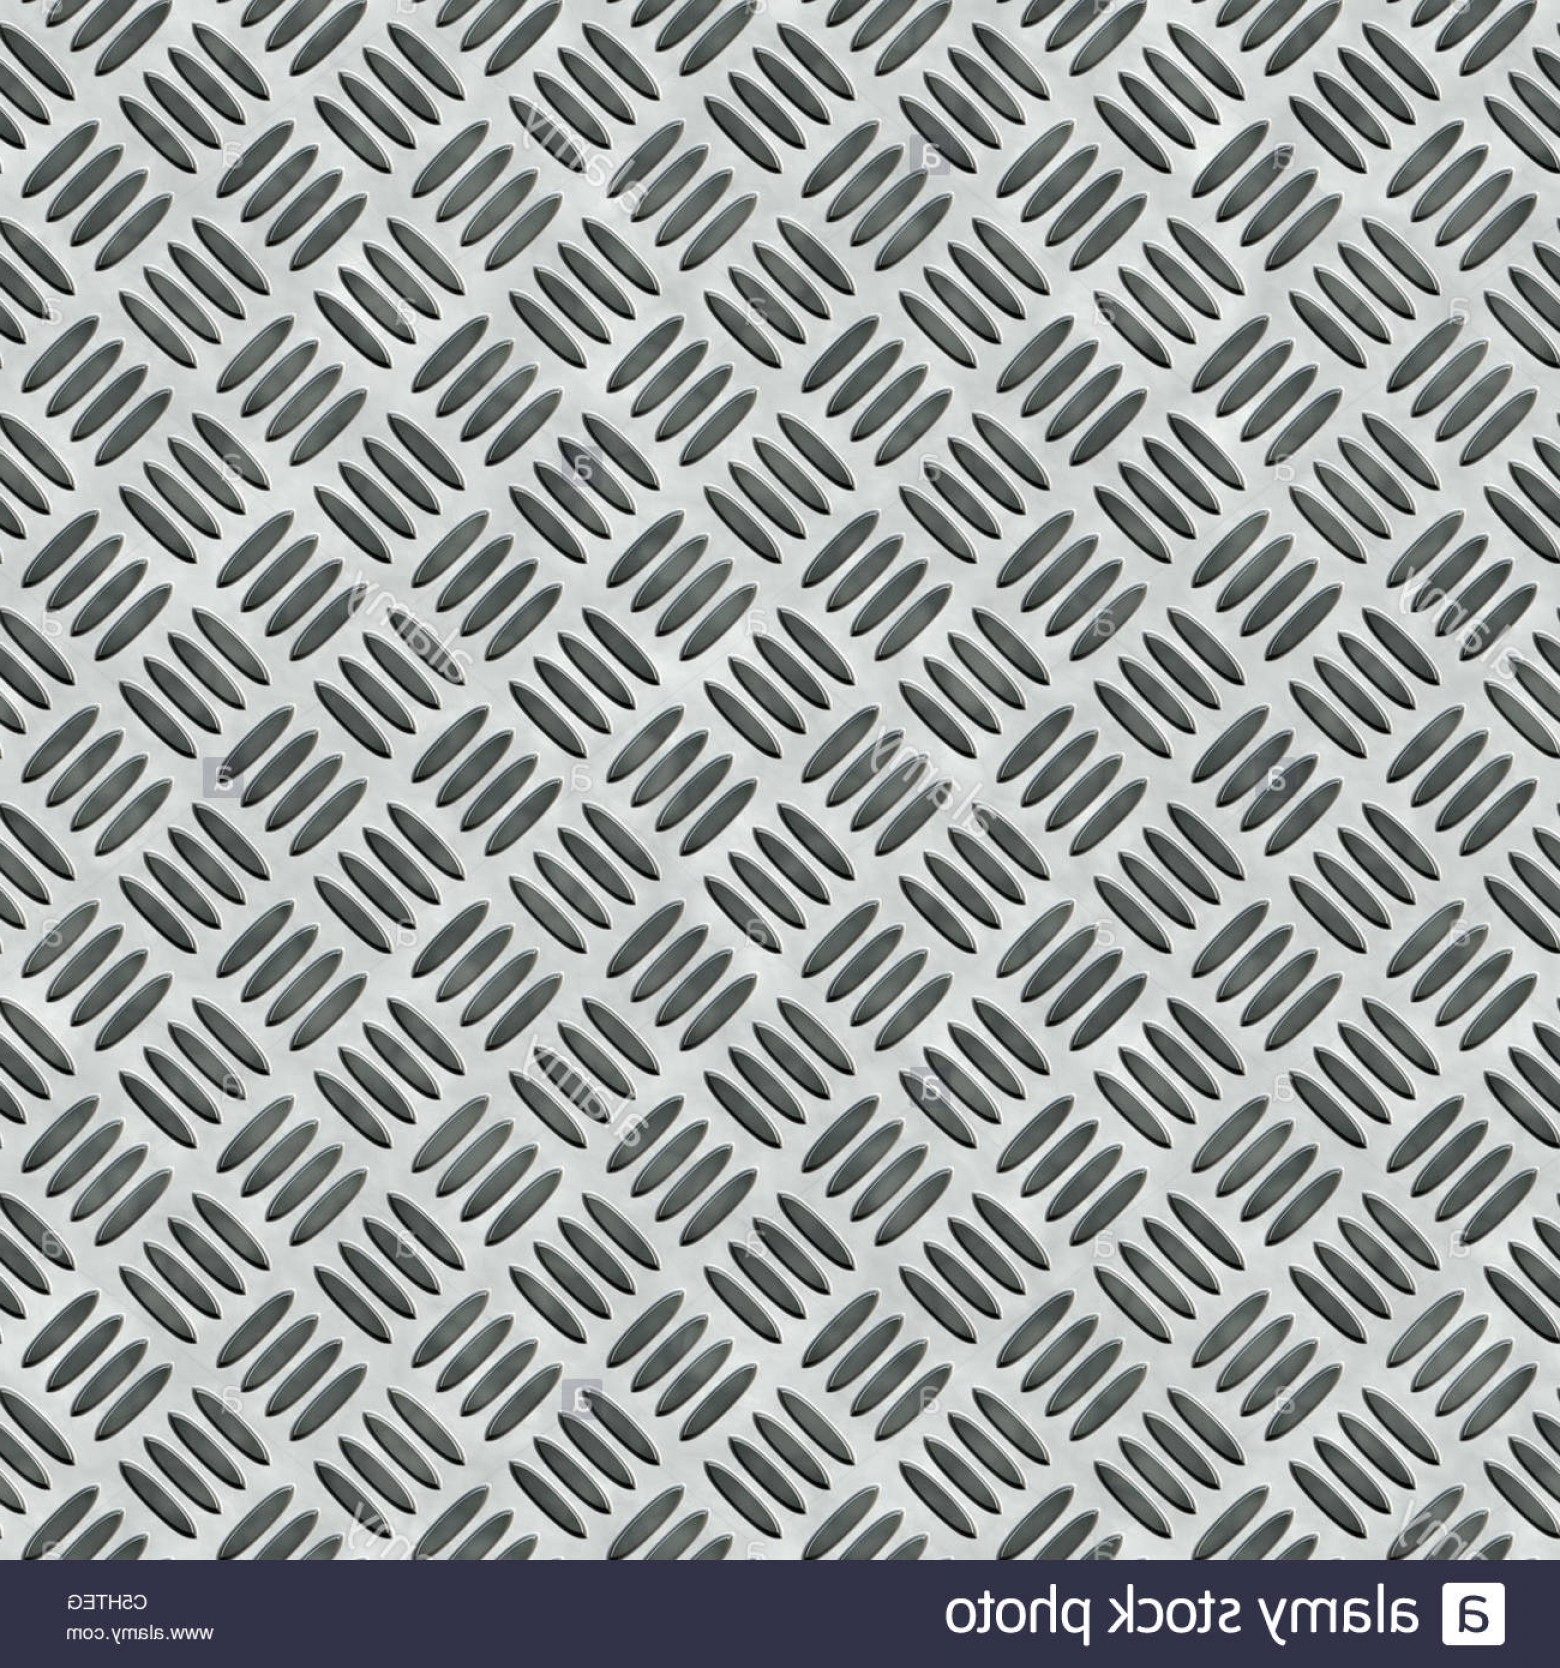 Diamond Plate Vector Pattern: Stock Photo A Diamond Plate Bumped Metal Texture That Tiles Seamlessly As A Pattern